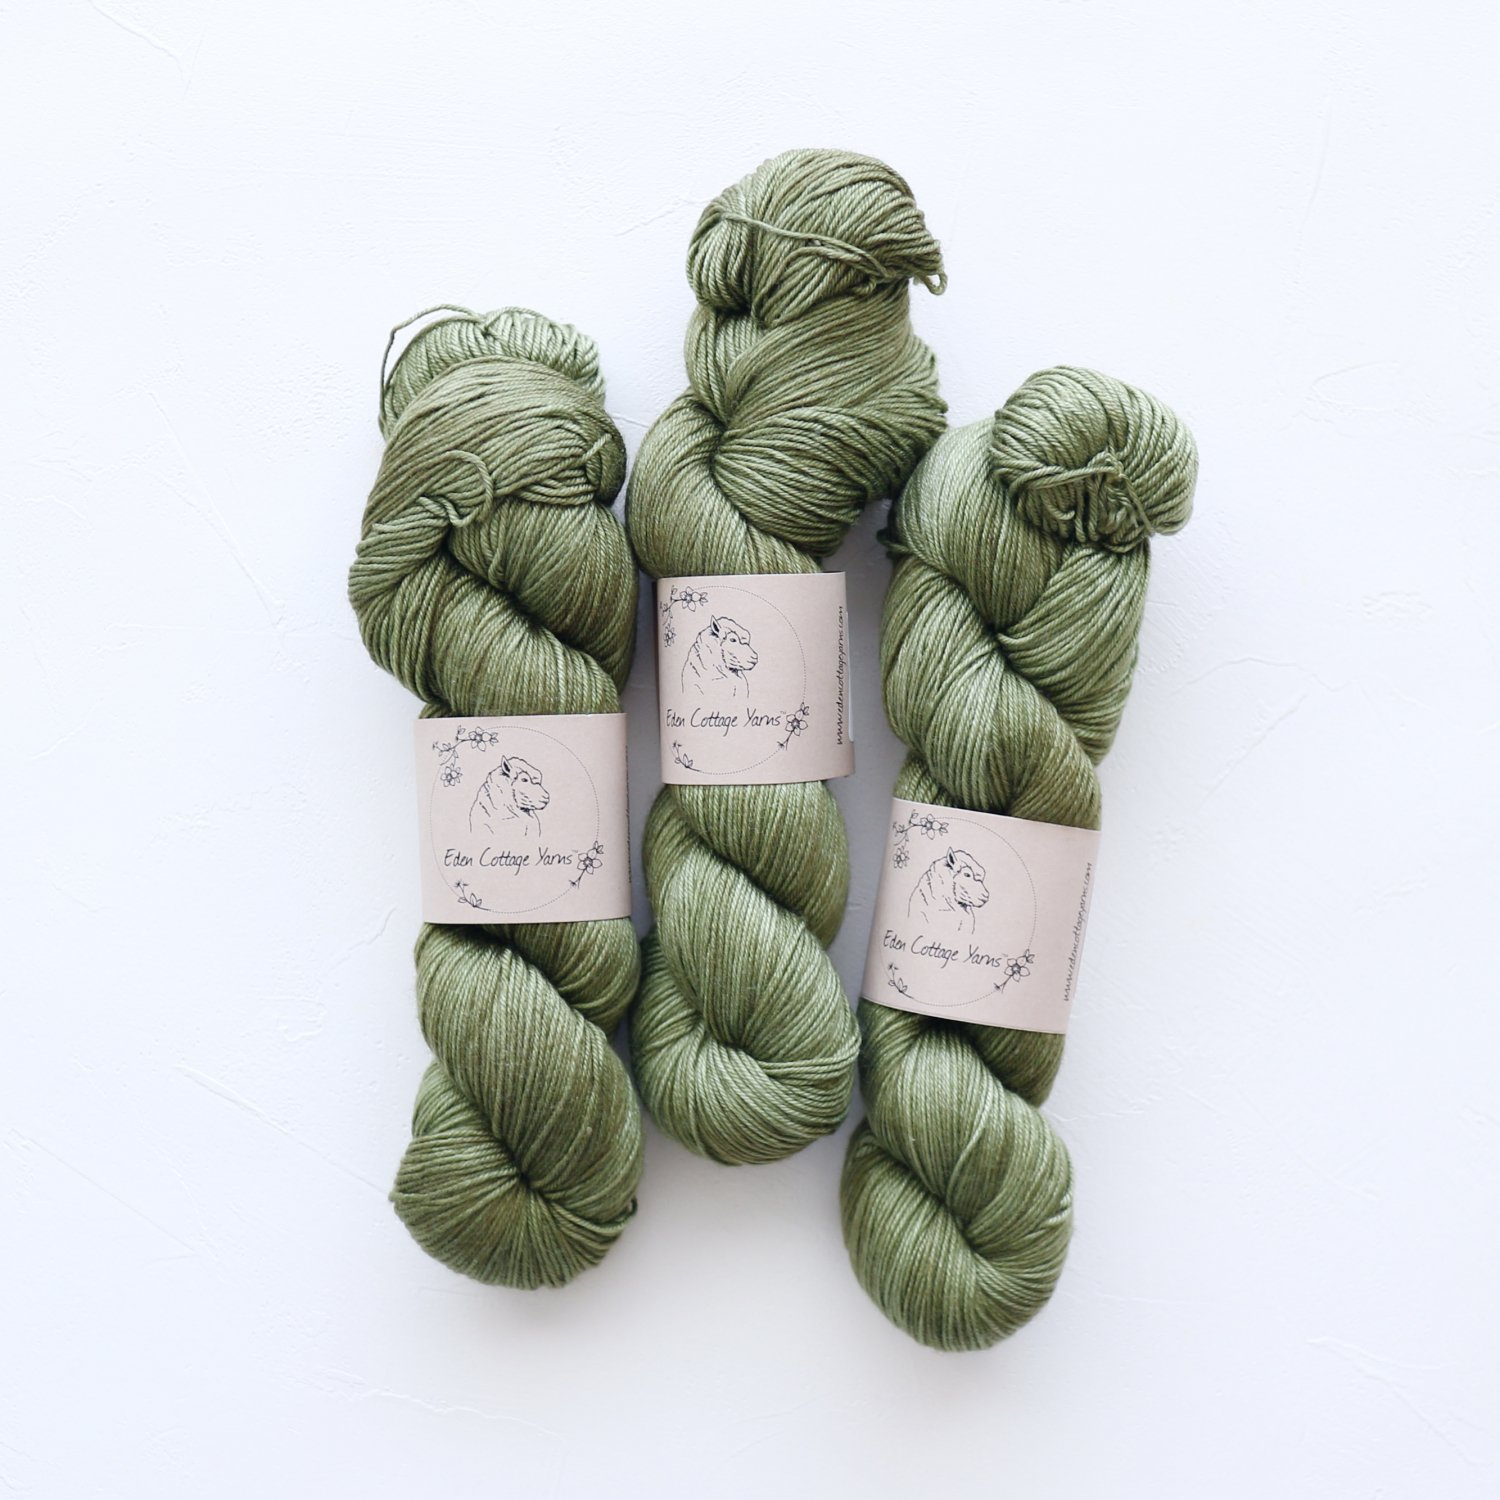 【Eden Cottage Yarns】<br>Titus 4ply<br>Woodland